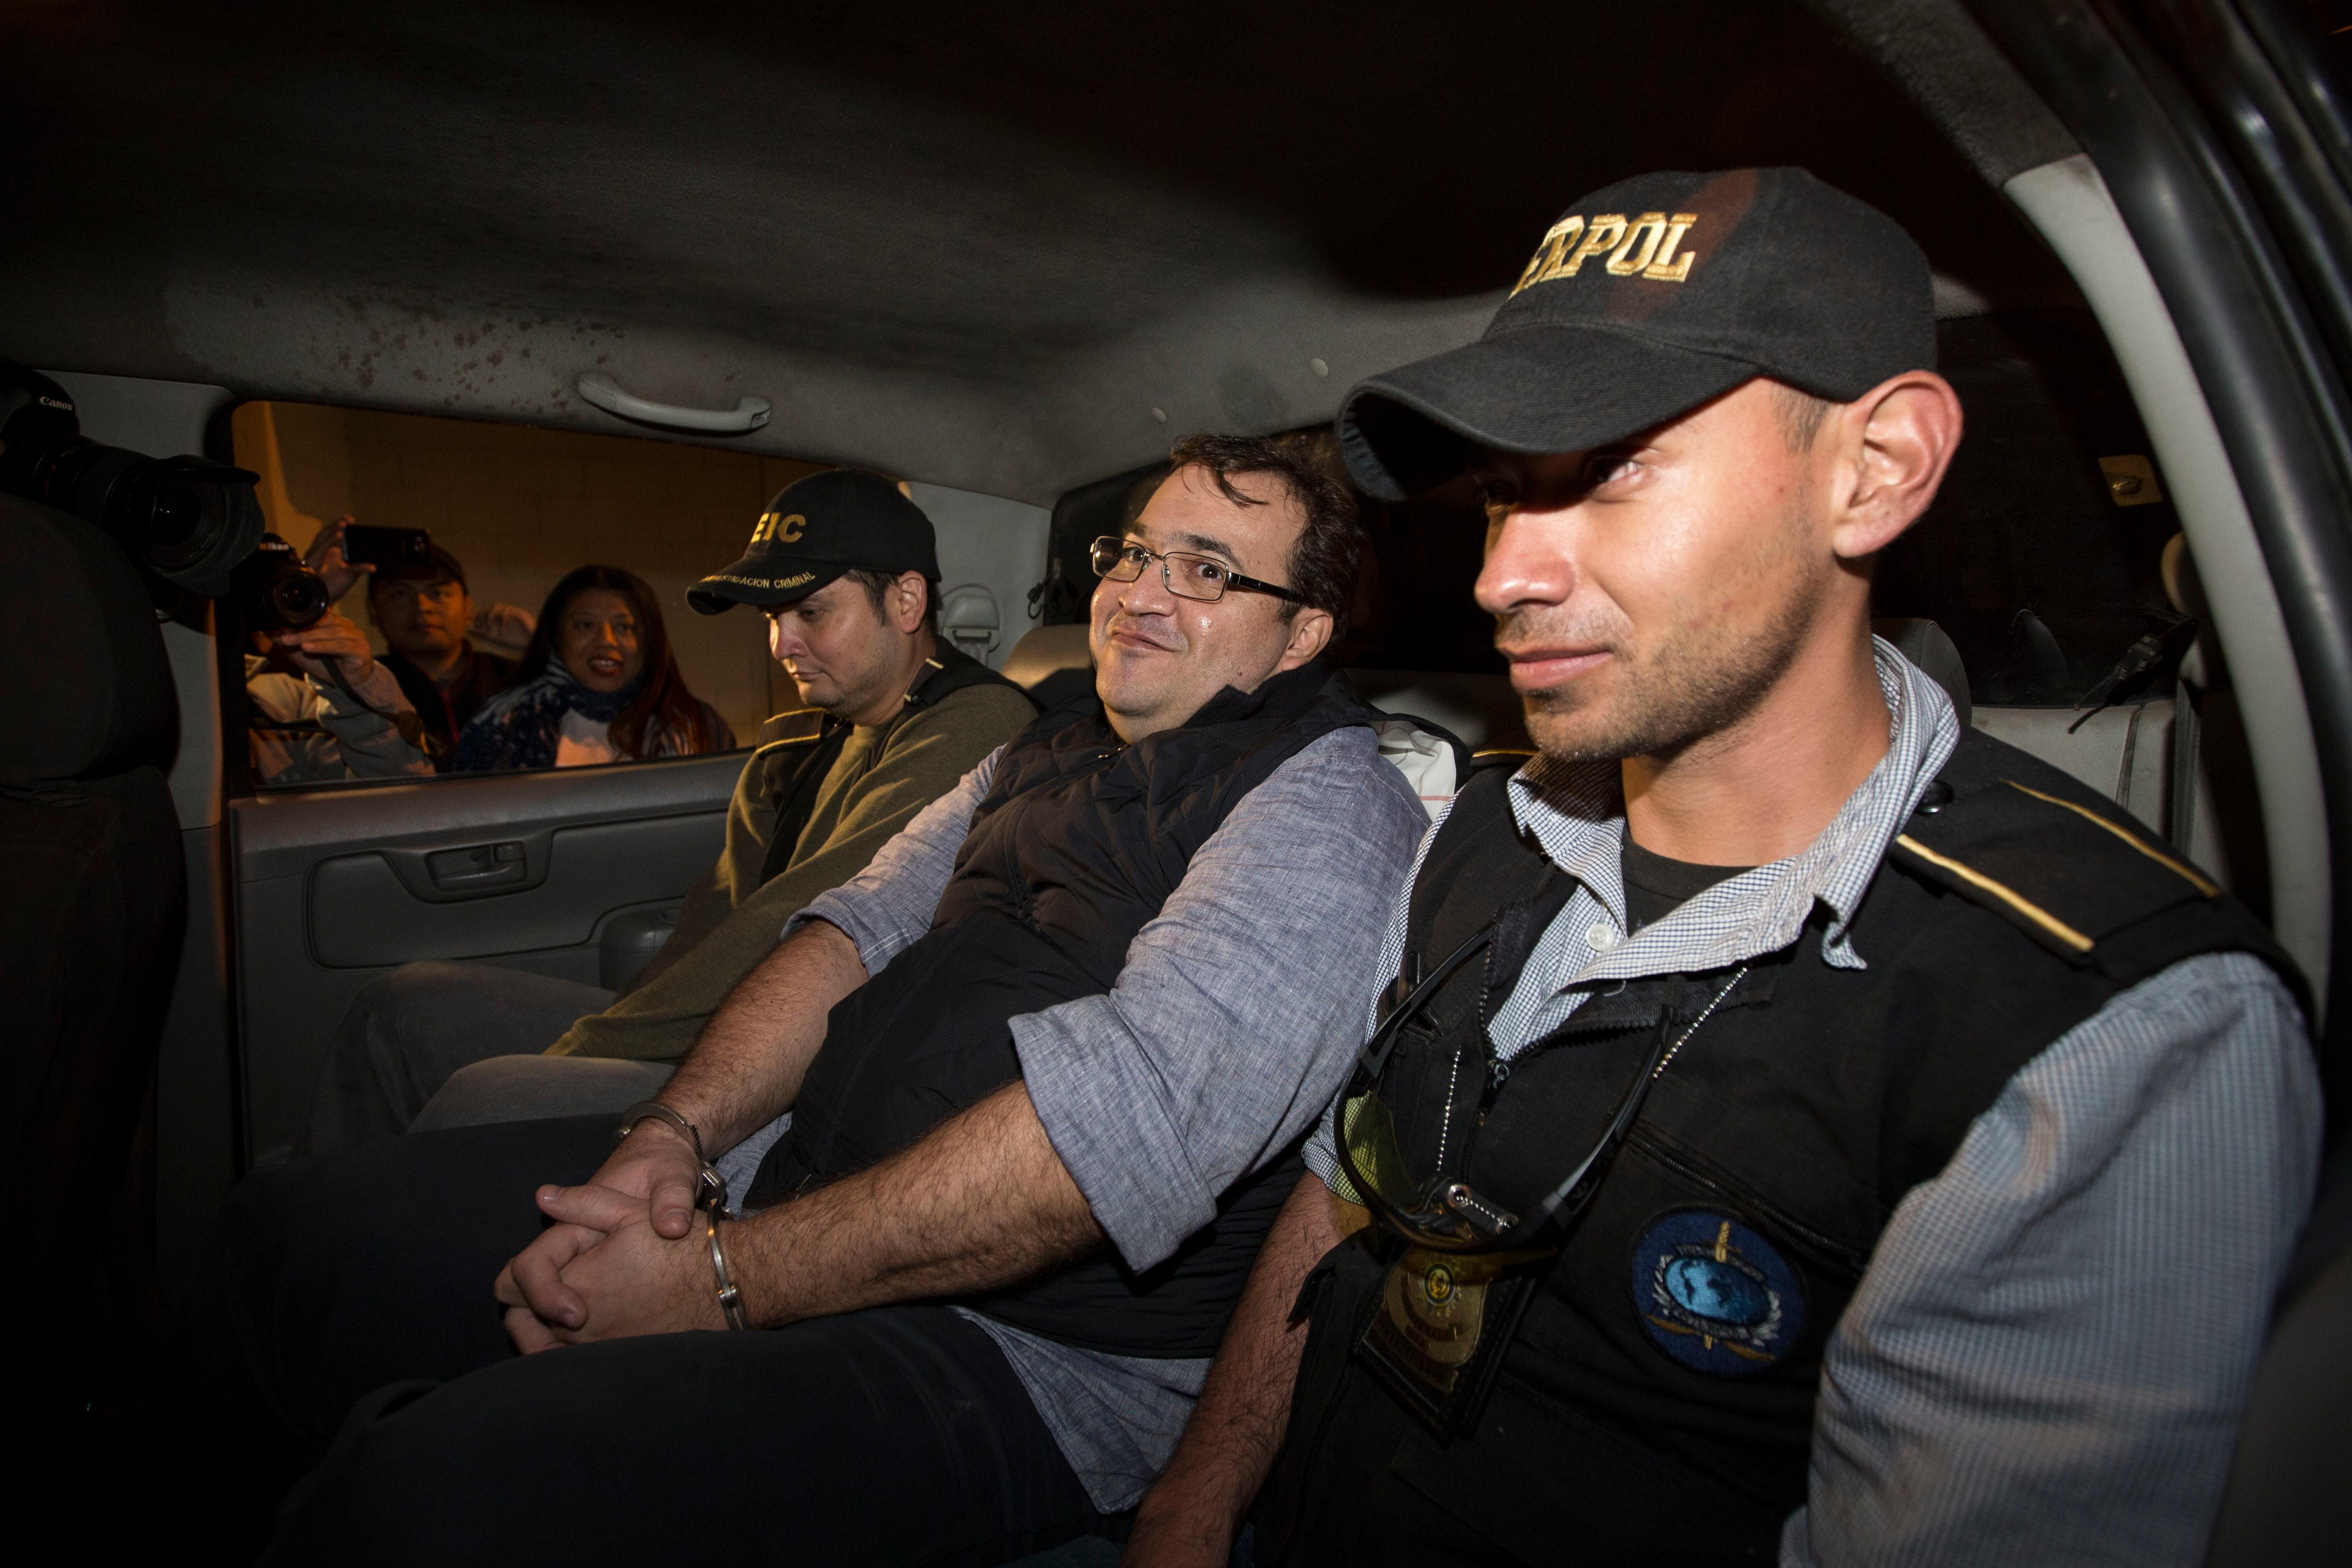 Mexico's former Veracruz state Gov. Javier Duarte, center, is escorted by agents of the local Interpol office inside a police car as they arrive at Guatemala City, early Sunday, April 16, 2017. Duarte, who is accused of running a ring that allegedly pilfered from state coffers, has been detained in Guatemala after six months as a fugitive and a high-profile symbol of government corruption. (AP Photo/Moises Castillo)